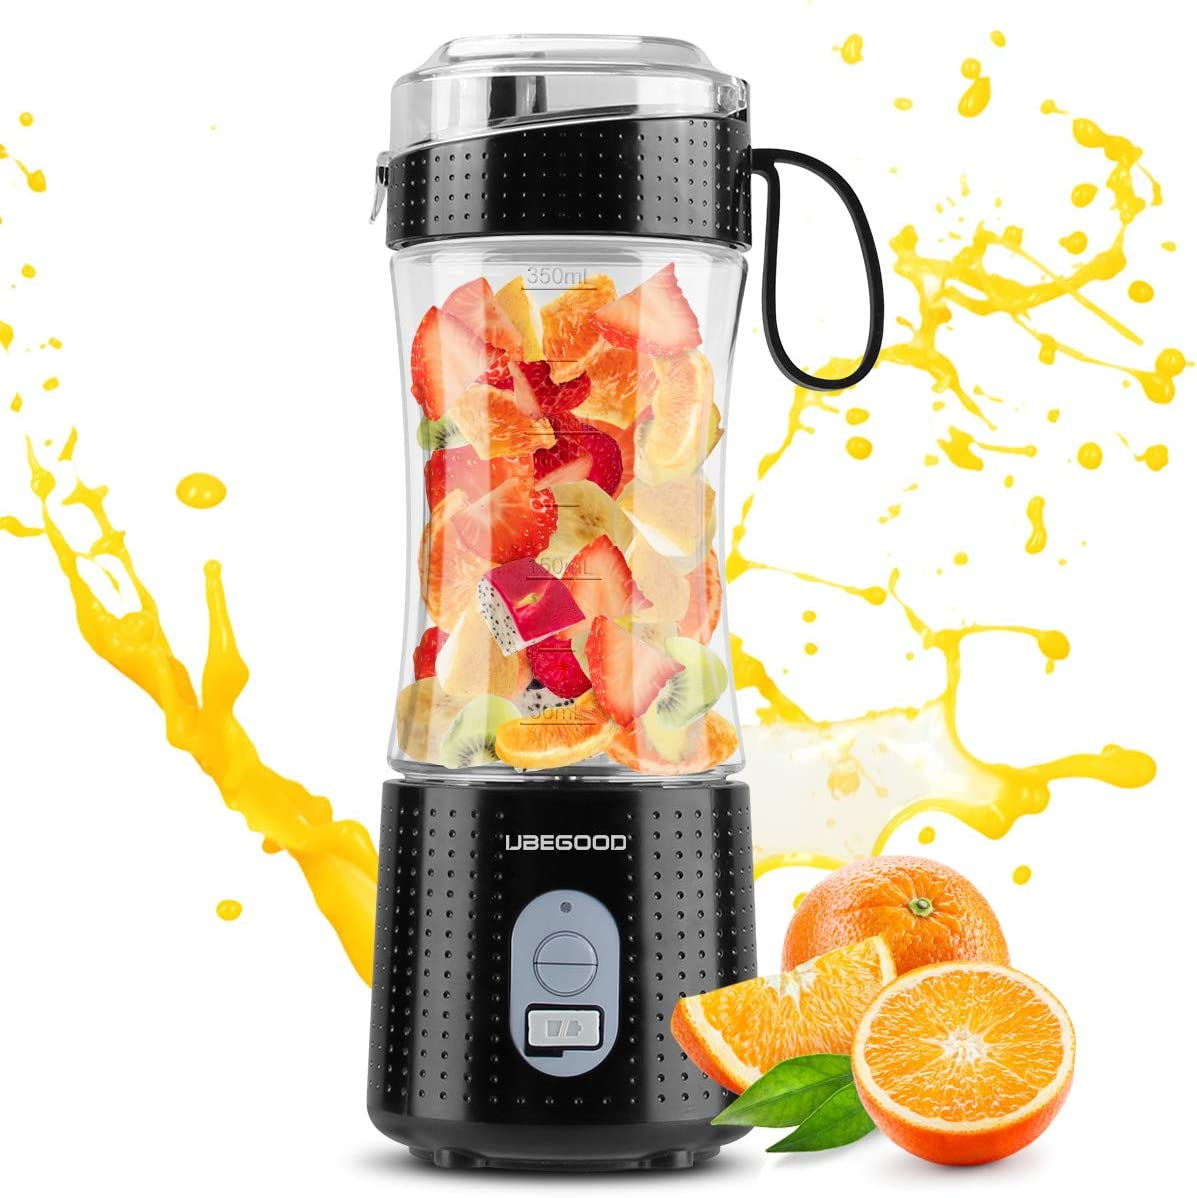 Portable Blender, UBEGOOD Personal Size Blenders Moothies and Shakes, USB Rchargeable Fruit Mixer Machine, Small Mini Juicer Cup for Home/Travel, 13oz (Black)